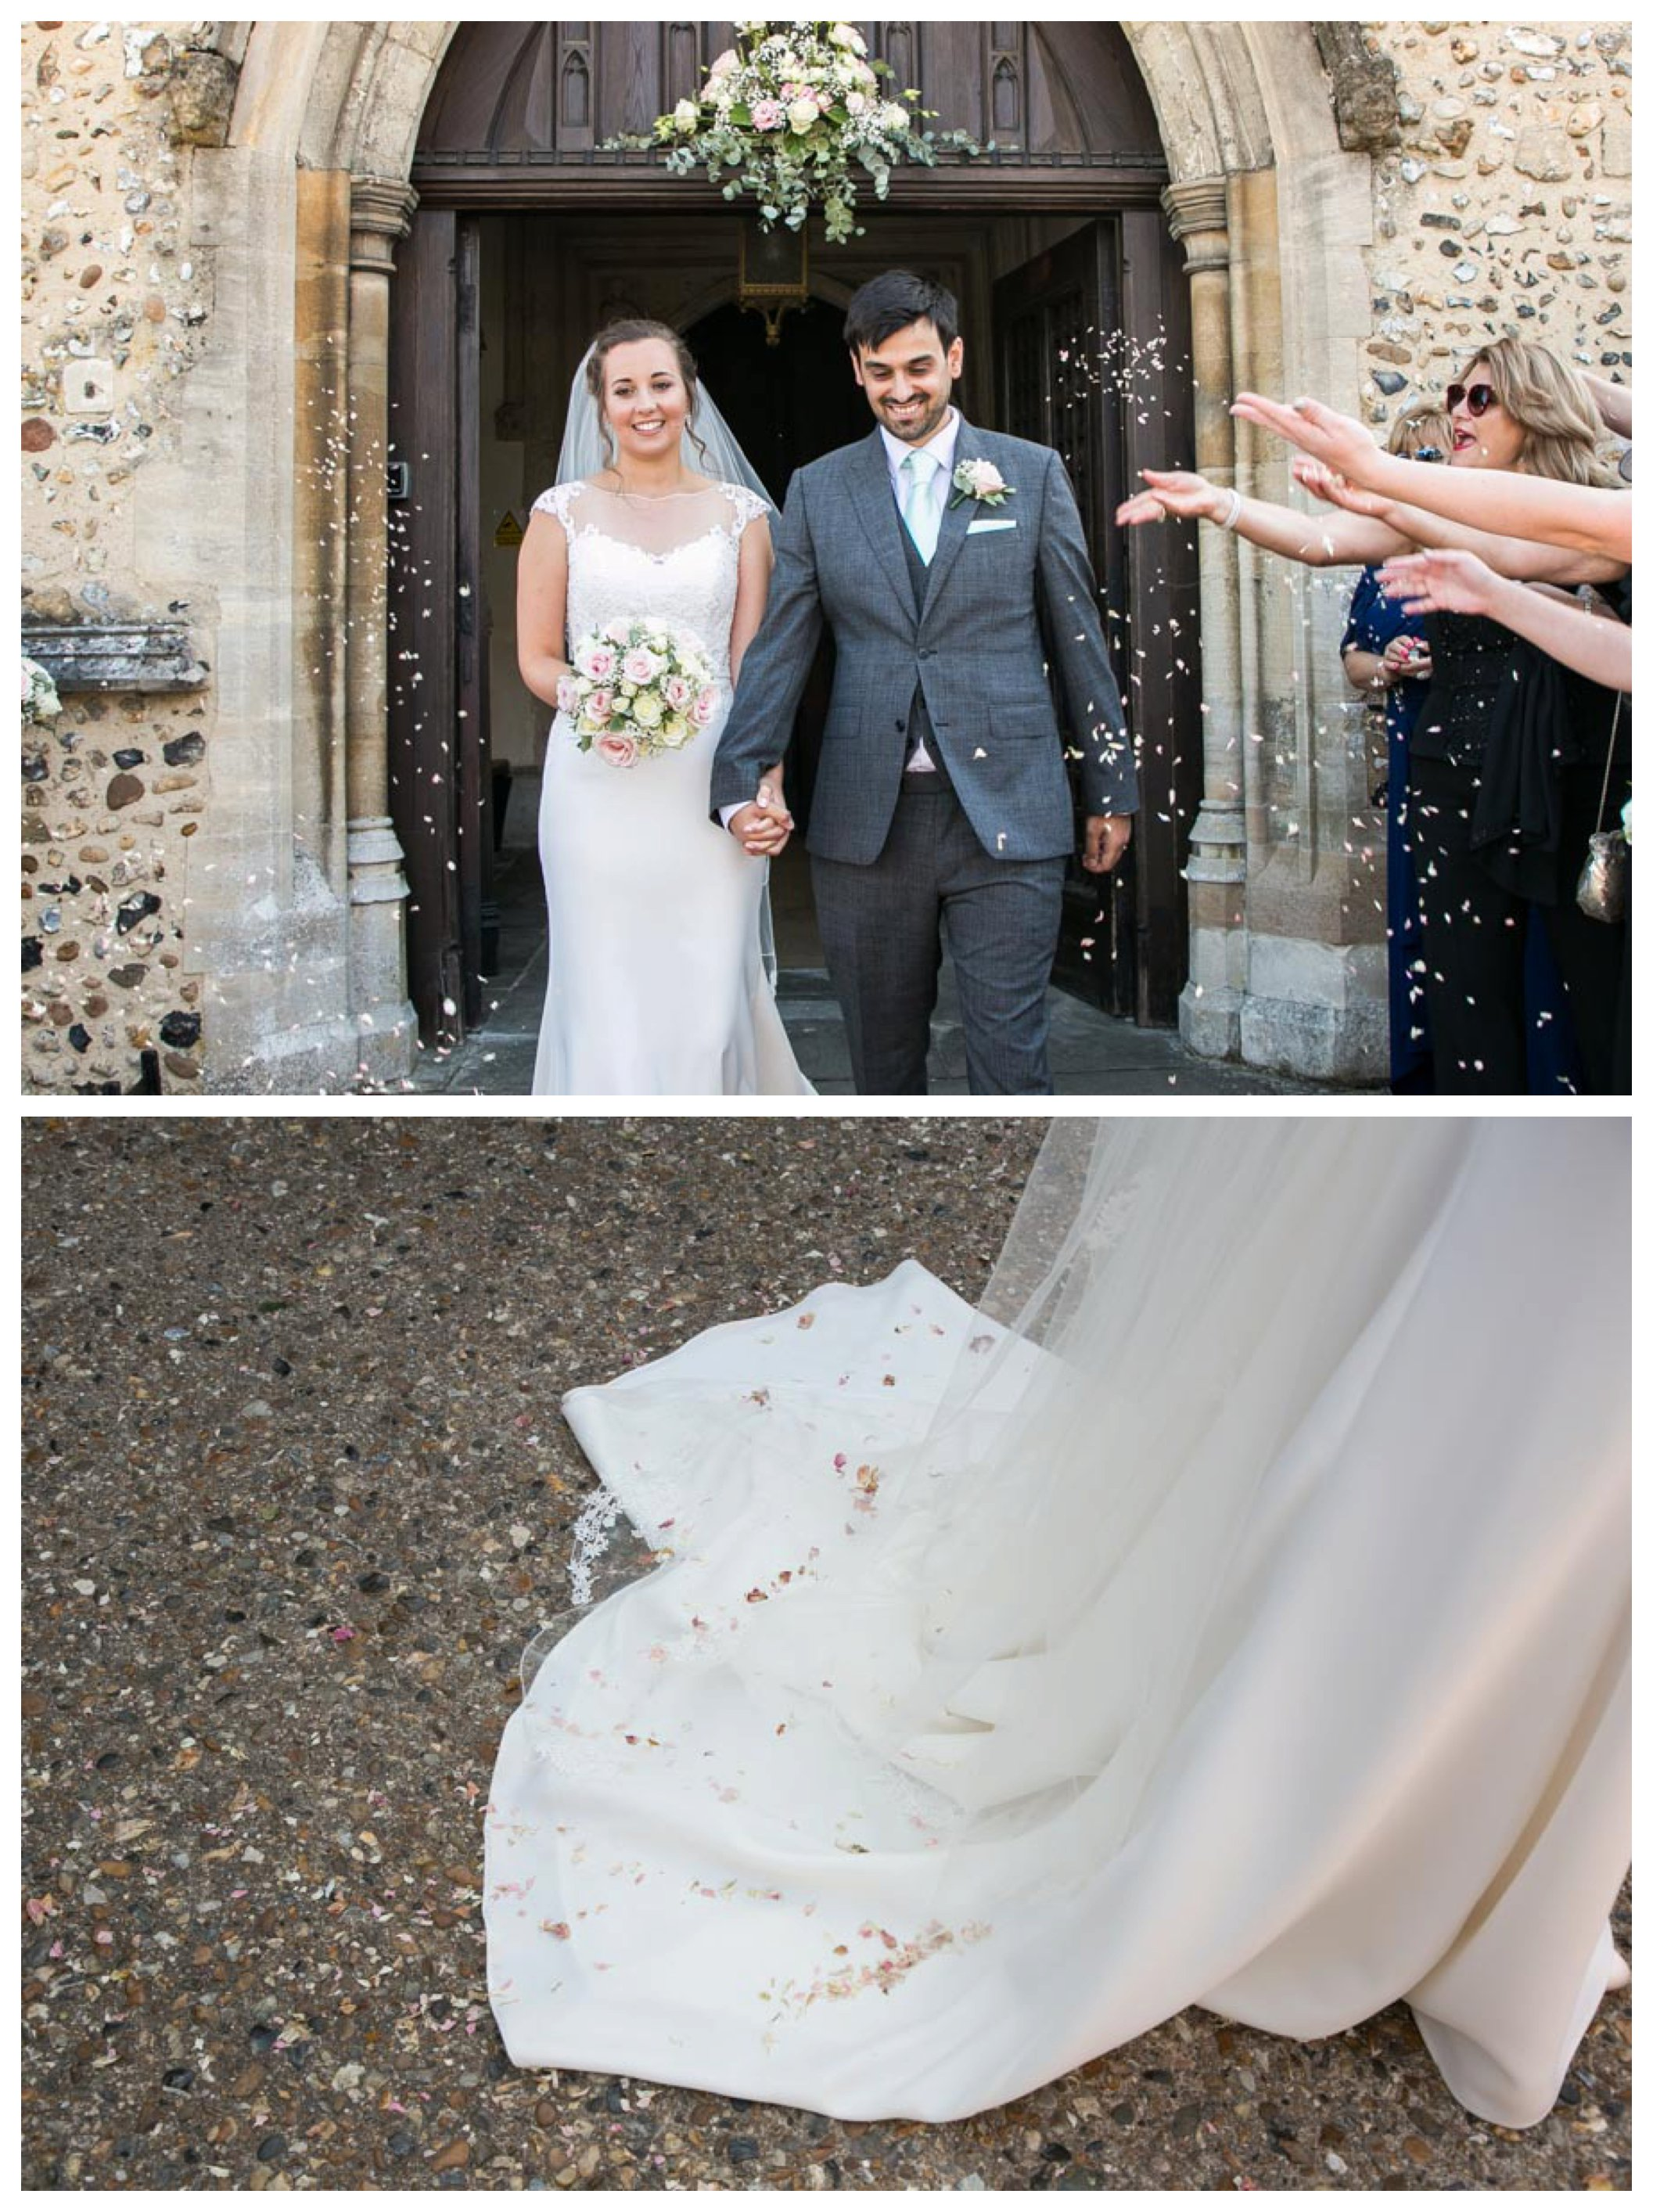 bride and groom leaving church, confetti on brides train of dress